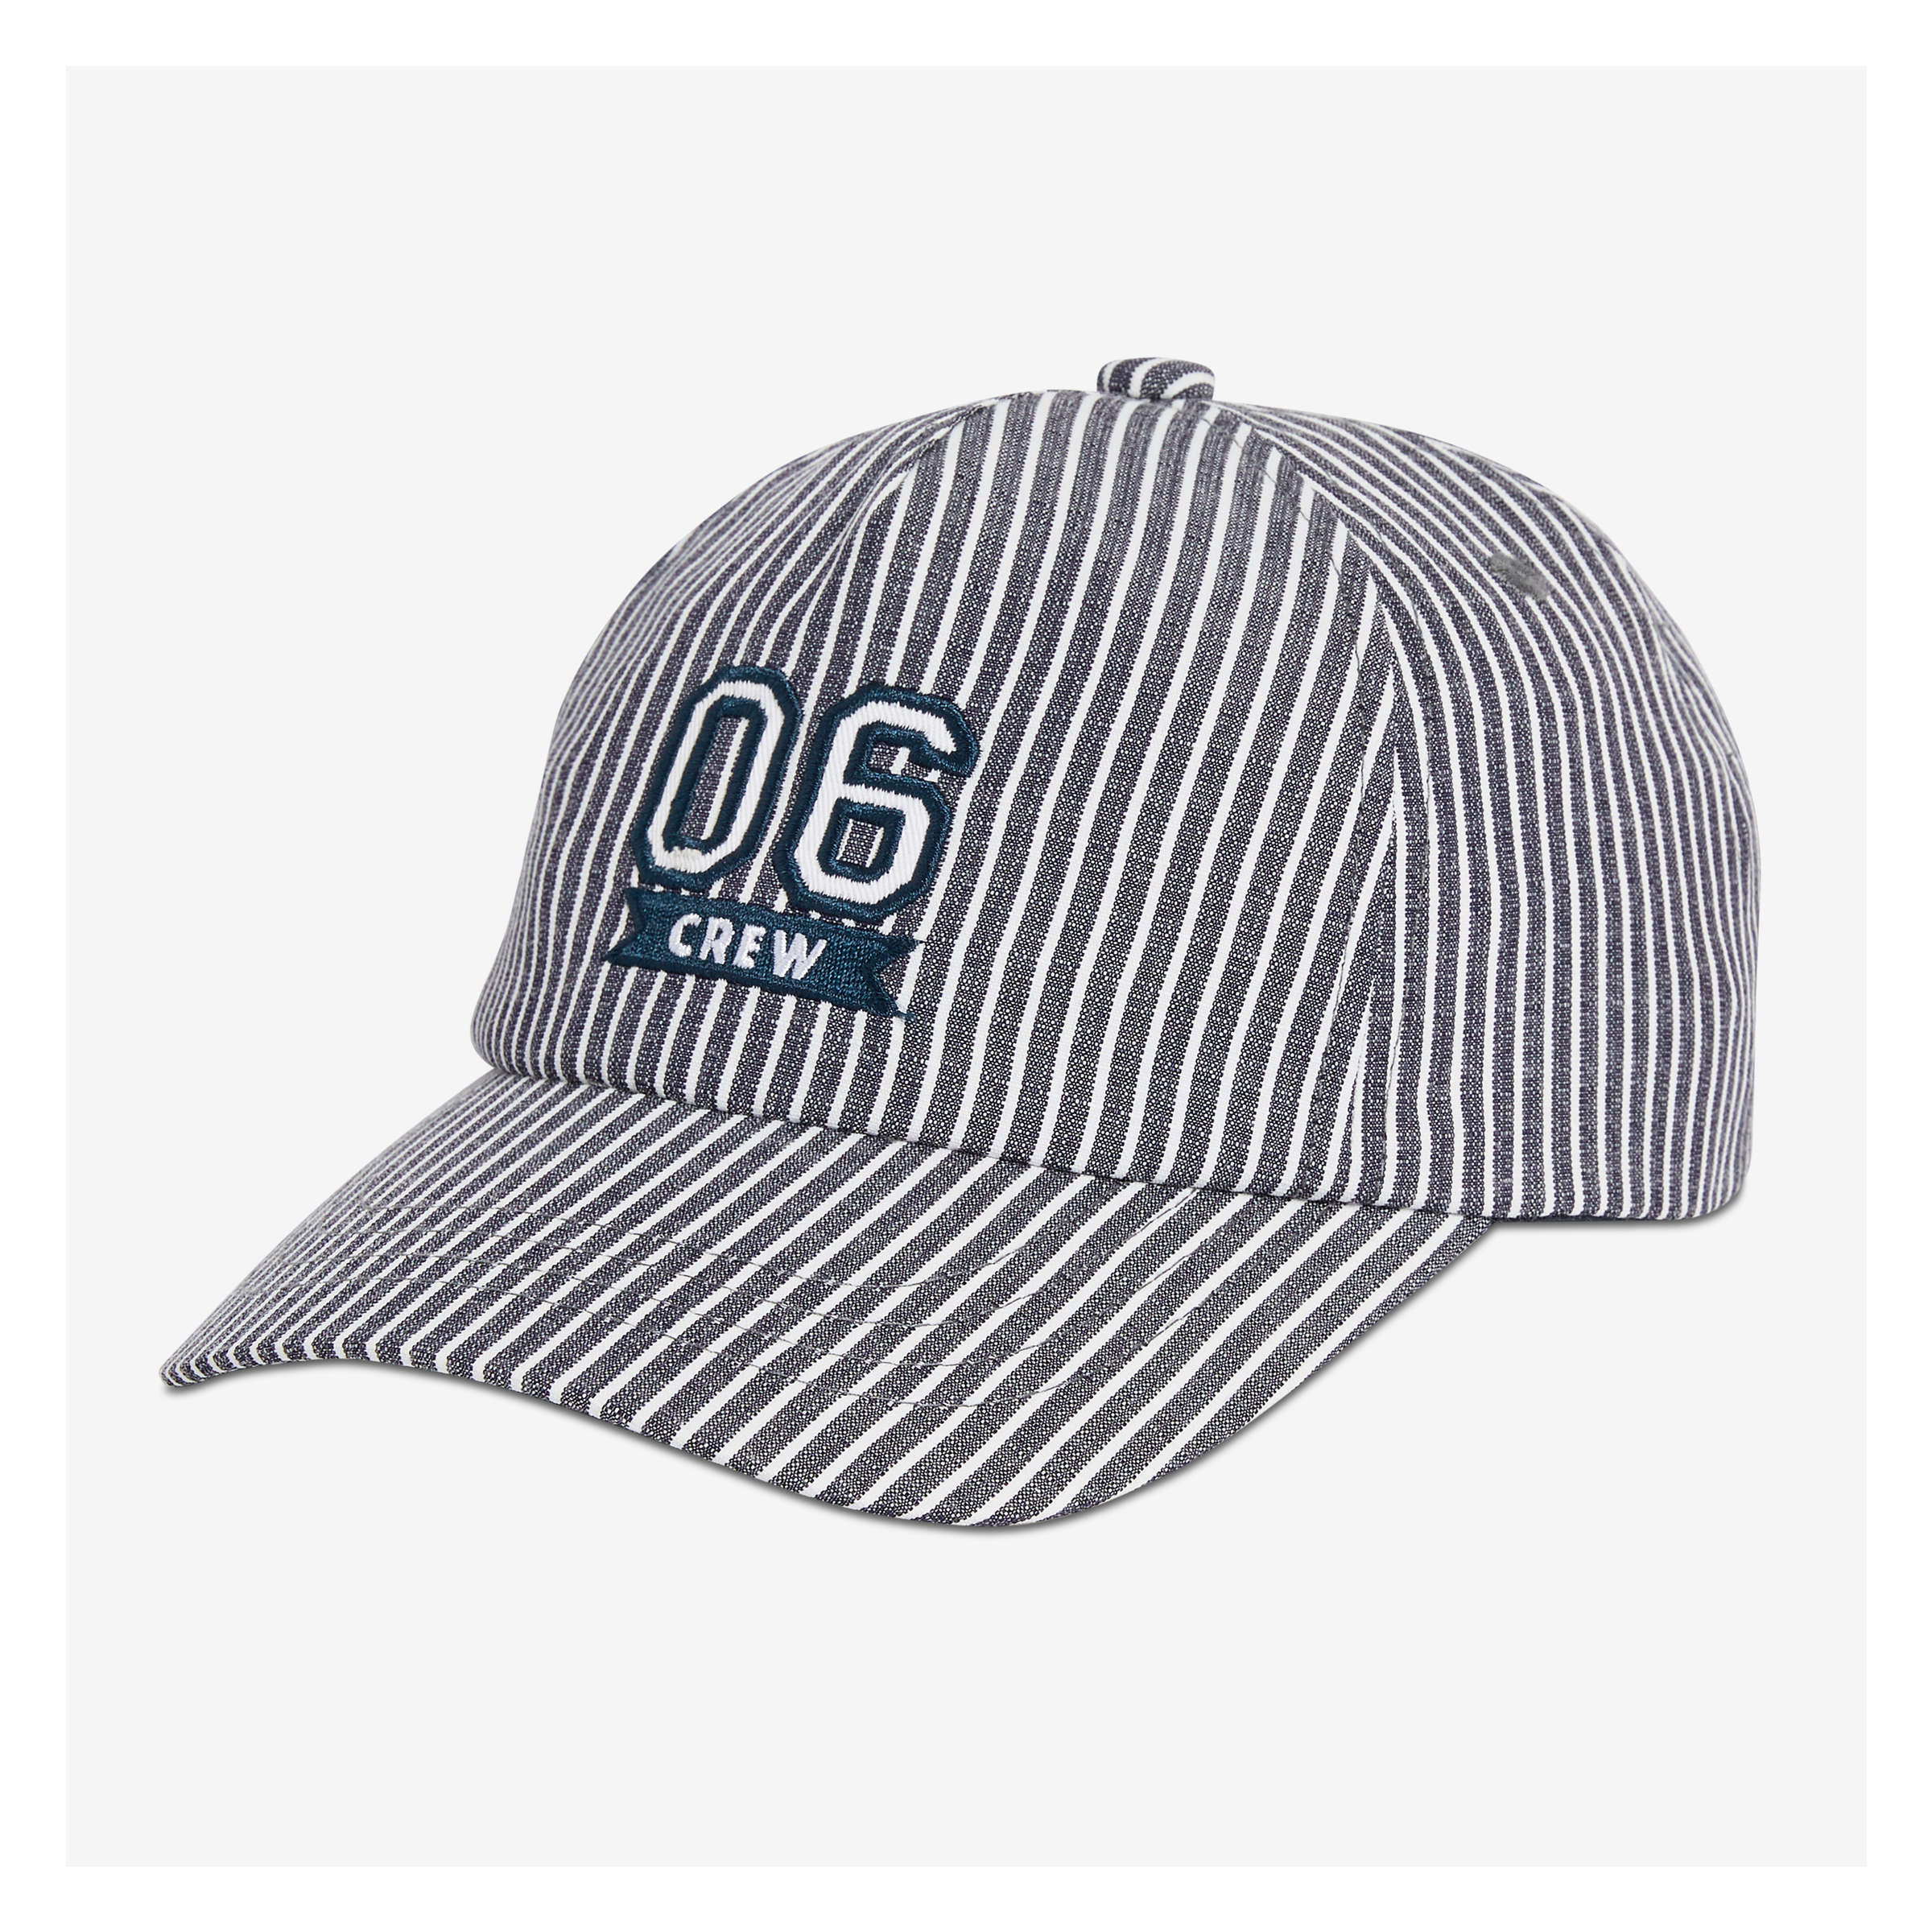 8b89e4a7 Kid Boys' Baseball Cap in Blue from Joe Fresh